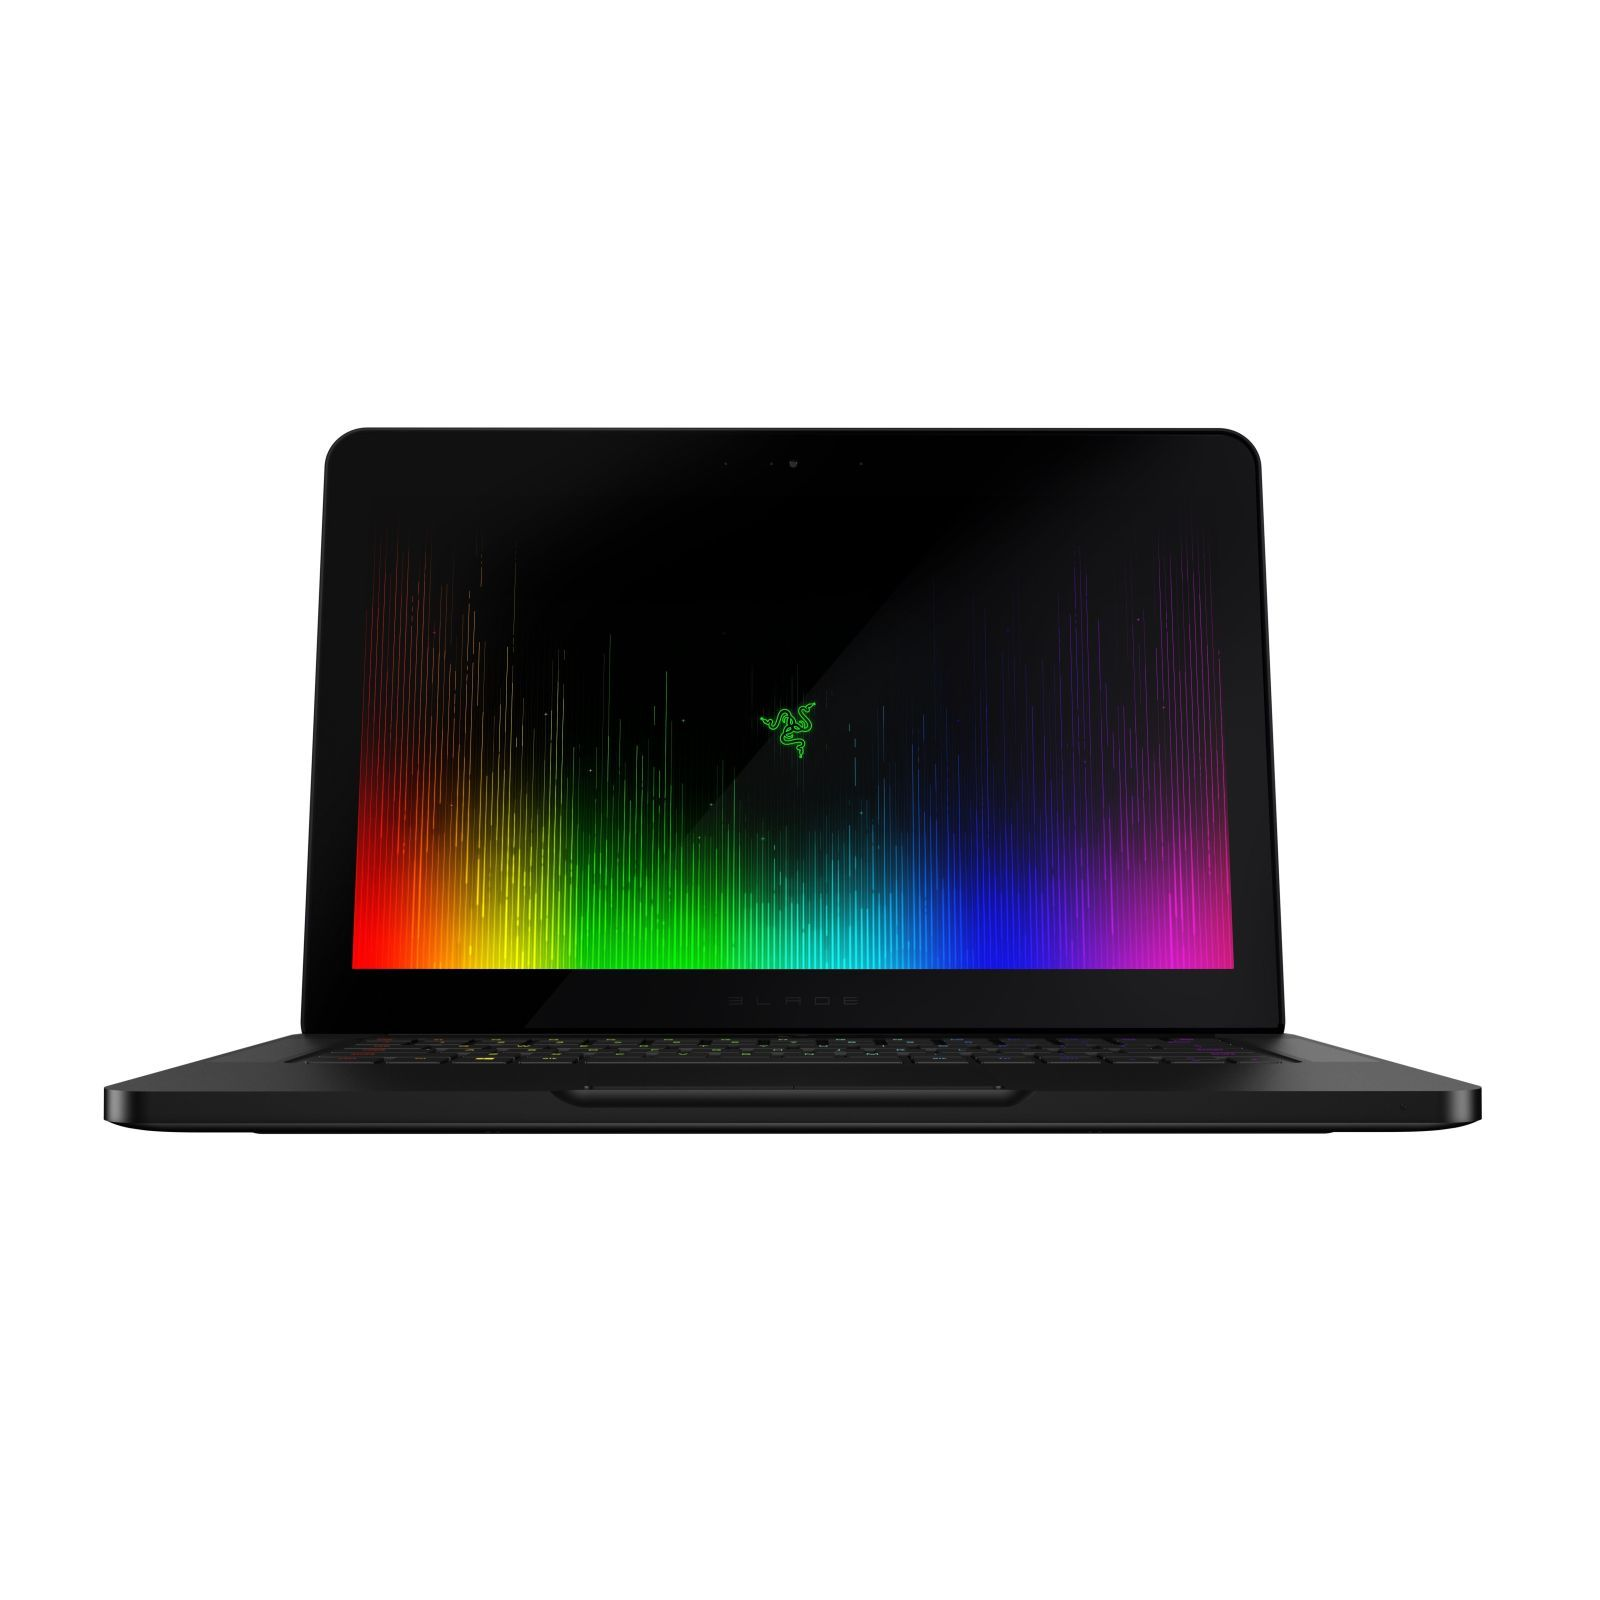 "Manufacturer Refurbished Razer RZ09-01953E72 14"" Laptop i7-7700HQ 16GB 512GB SSD GTX 1060 W10 